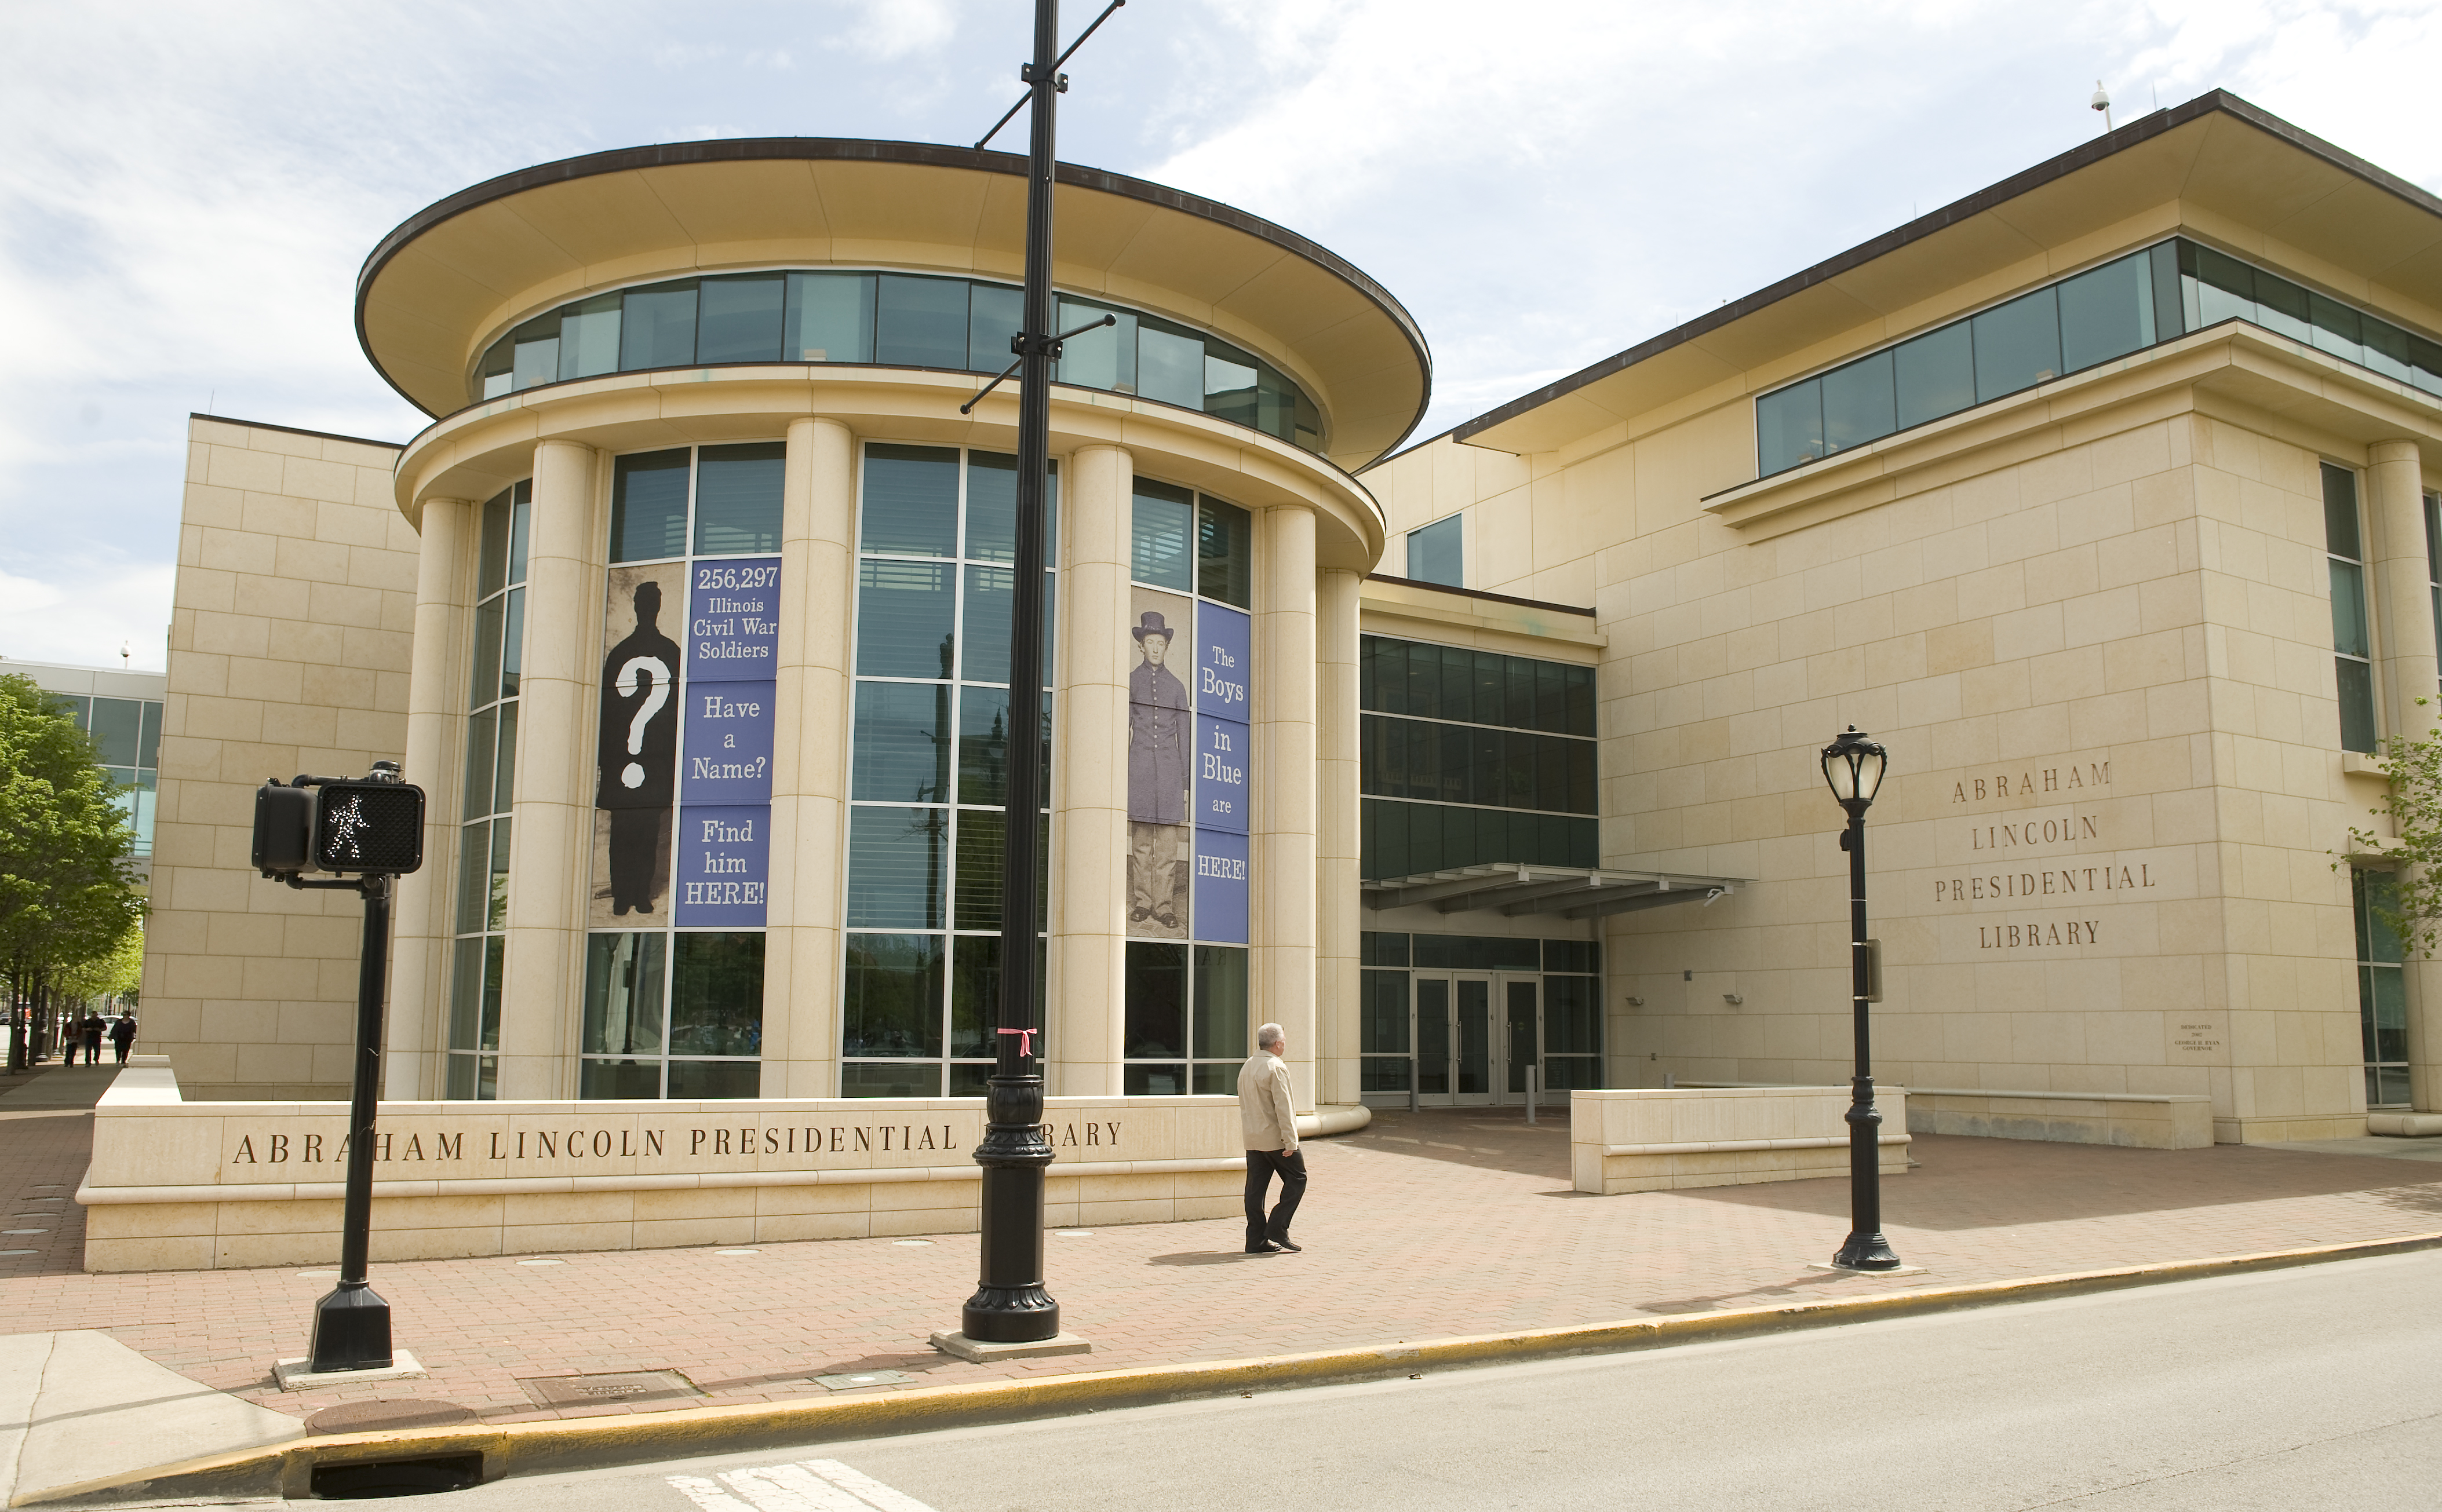 The Abraham Lincoln Presidential Library and Museum in Springfield, Illinois.